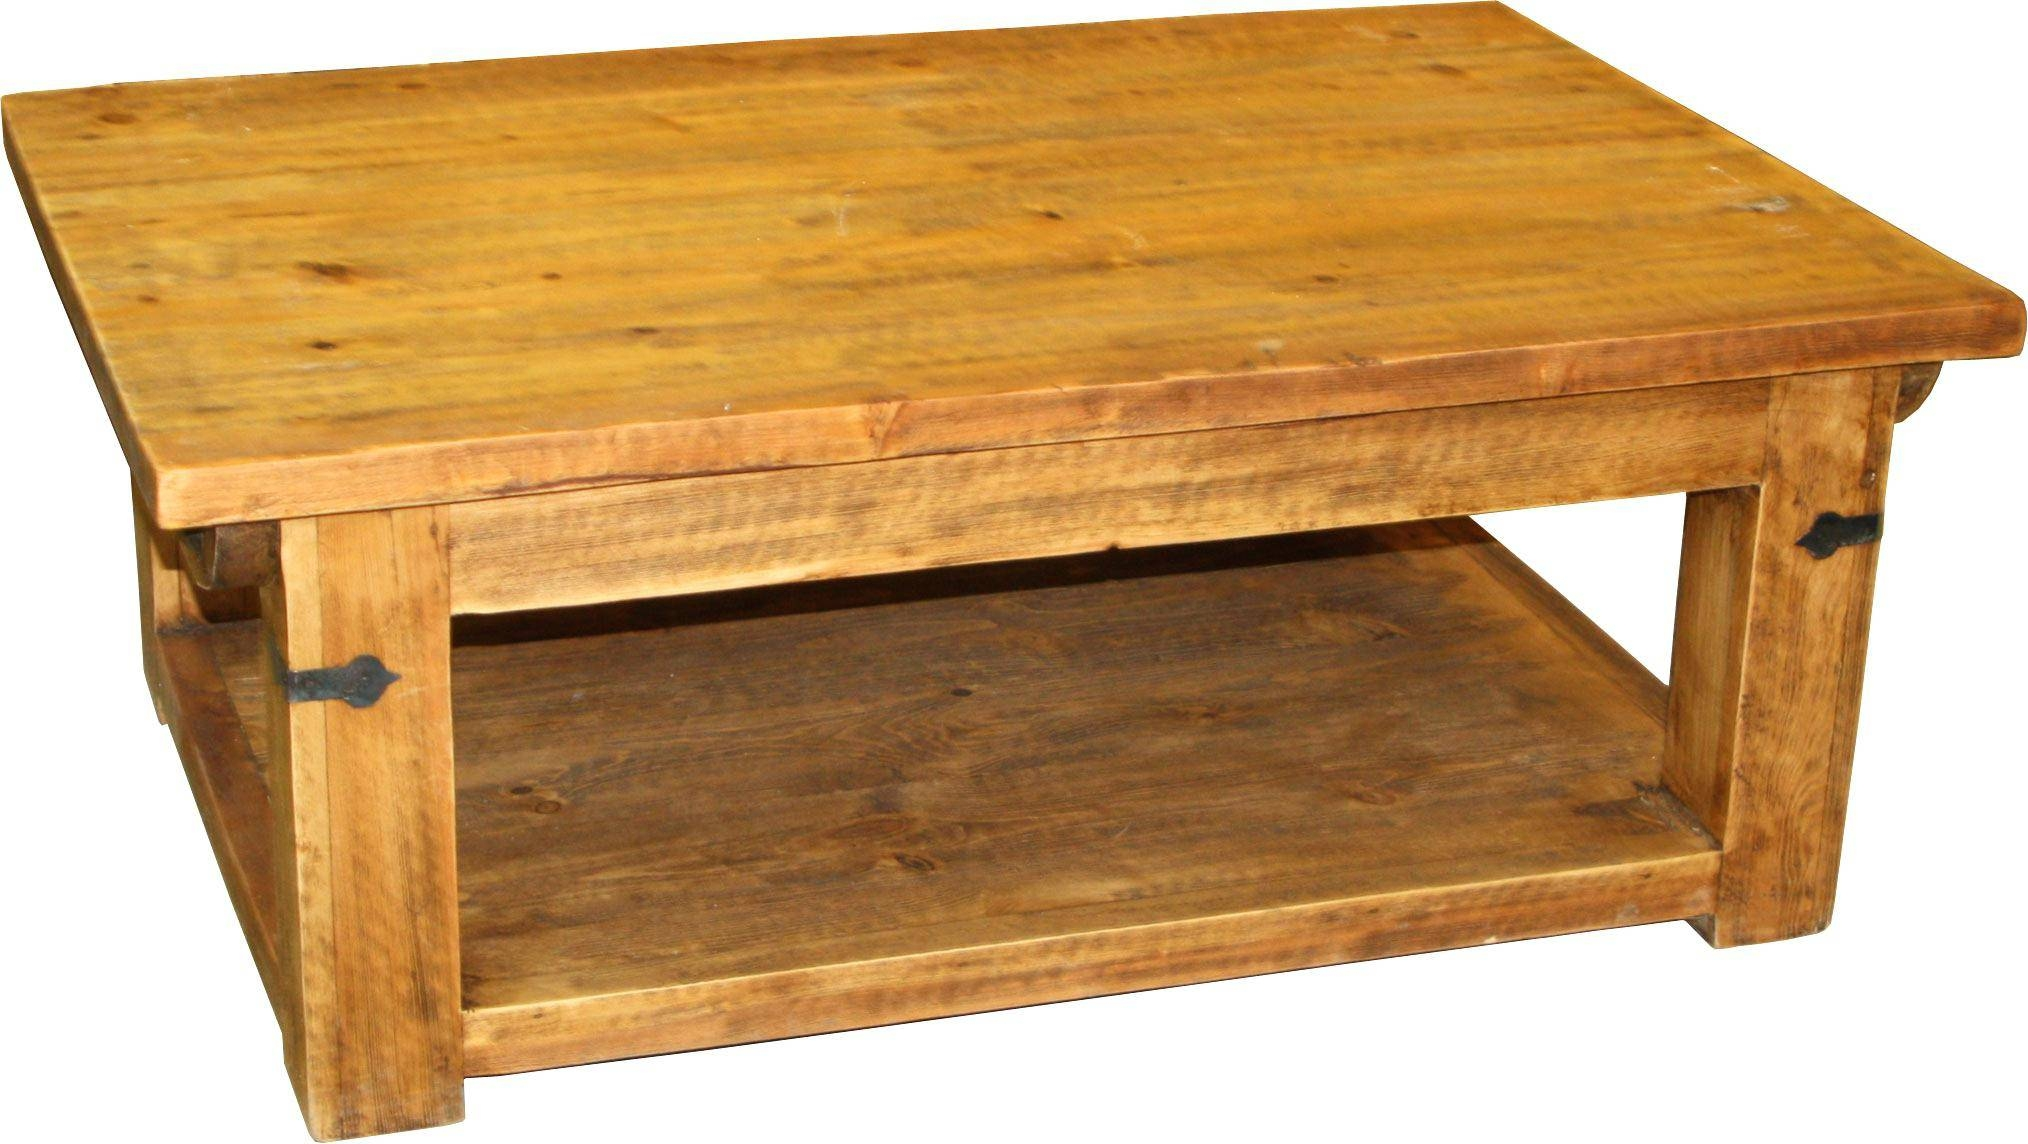 Coffee Table ~ Rustic Pine Coffee Tablesmall Table Small Round within Pine Coffee Tables (Image 5 of 30)